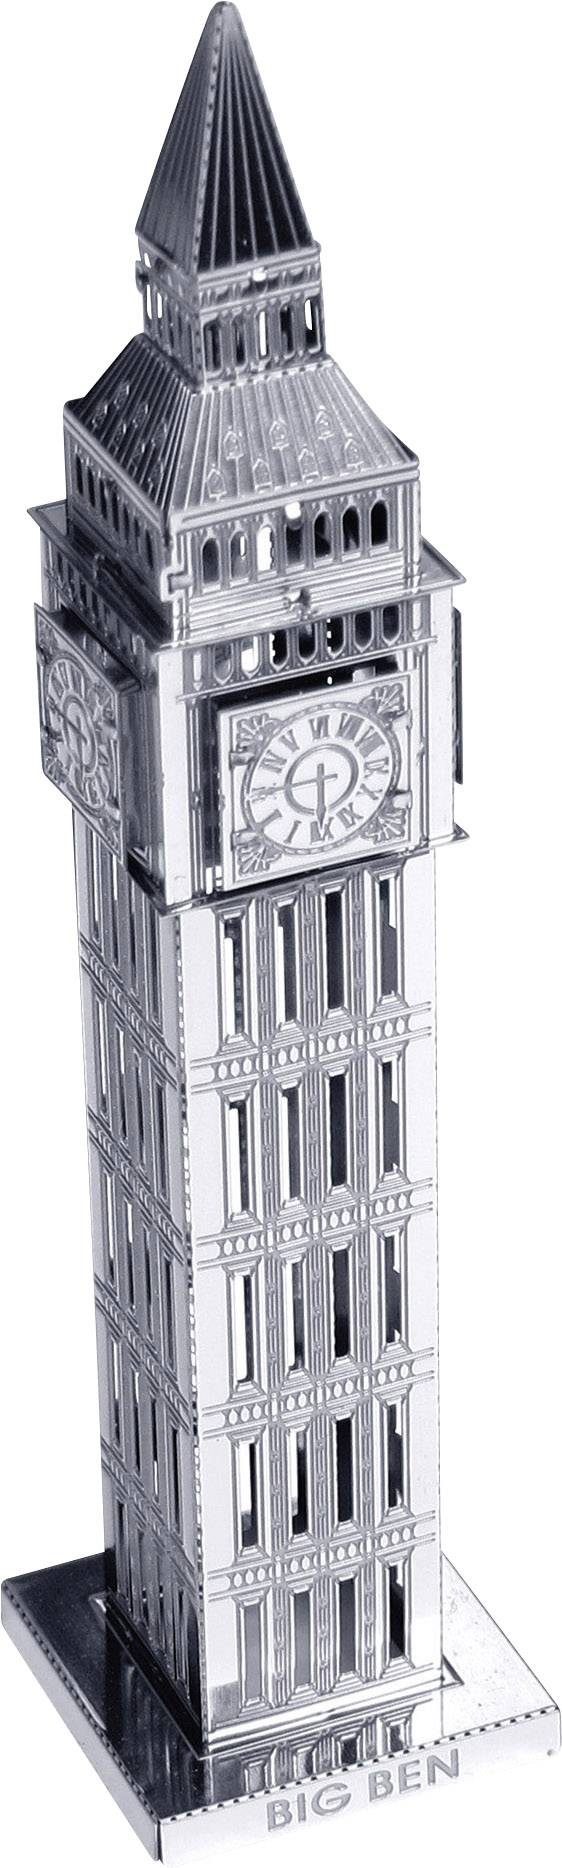 Stavebnica Metal Earth Big Ben Tower